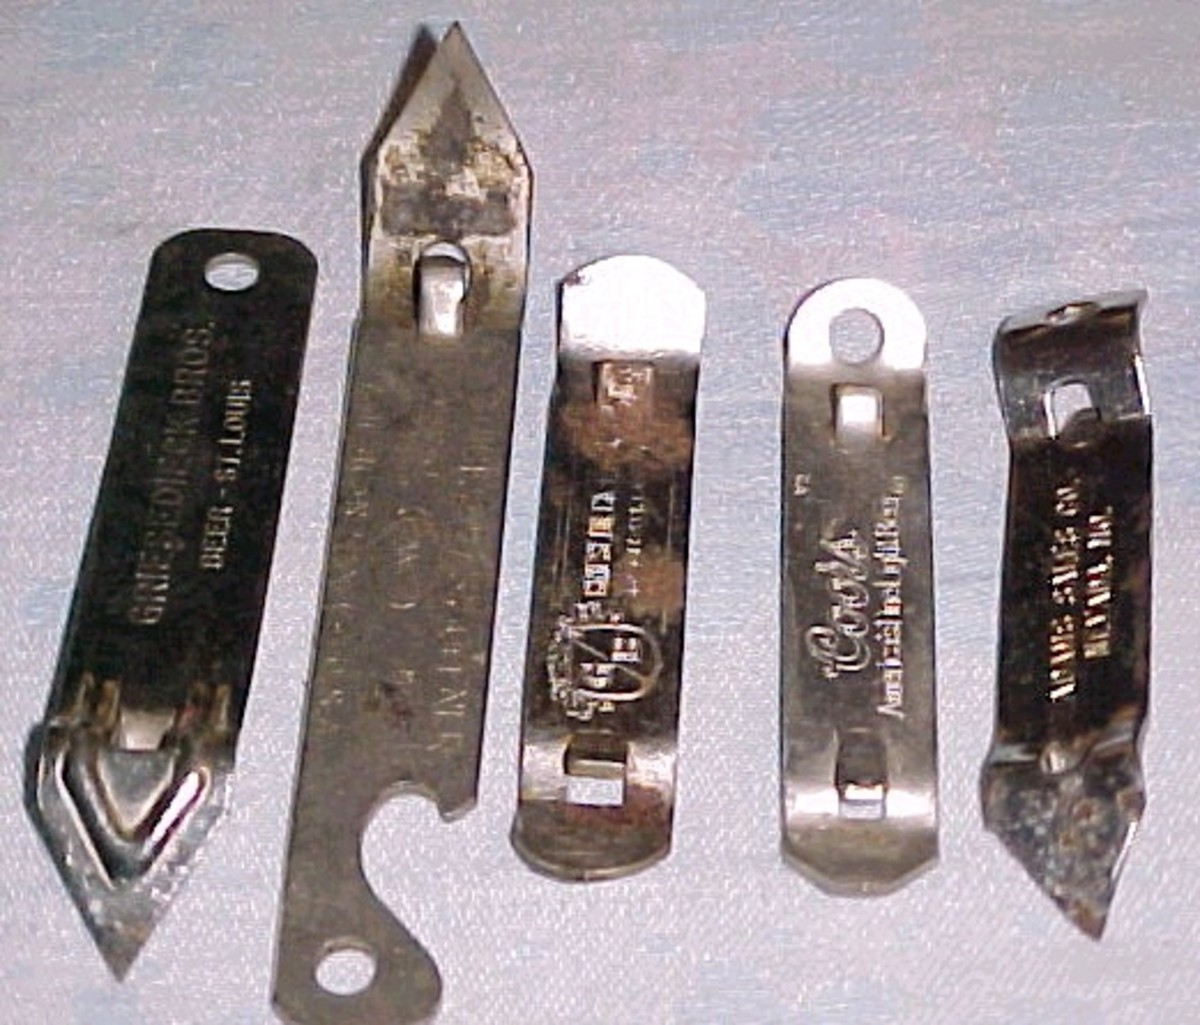 The magical church key opener that was needed to open the flat top beer can.